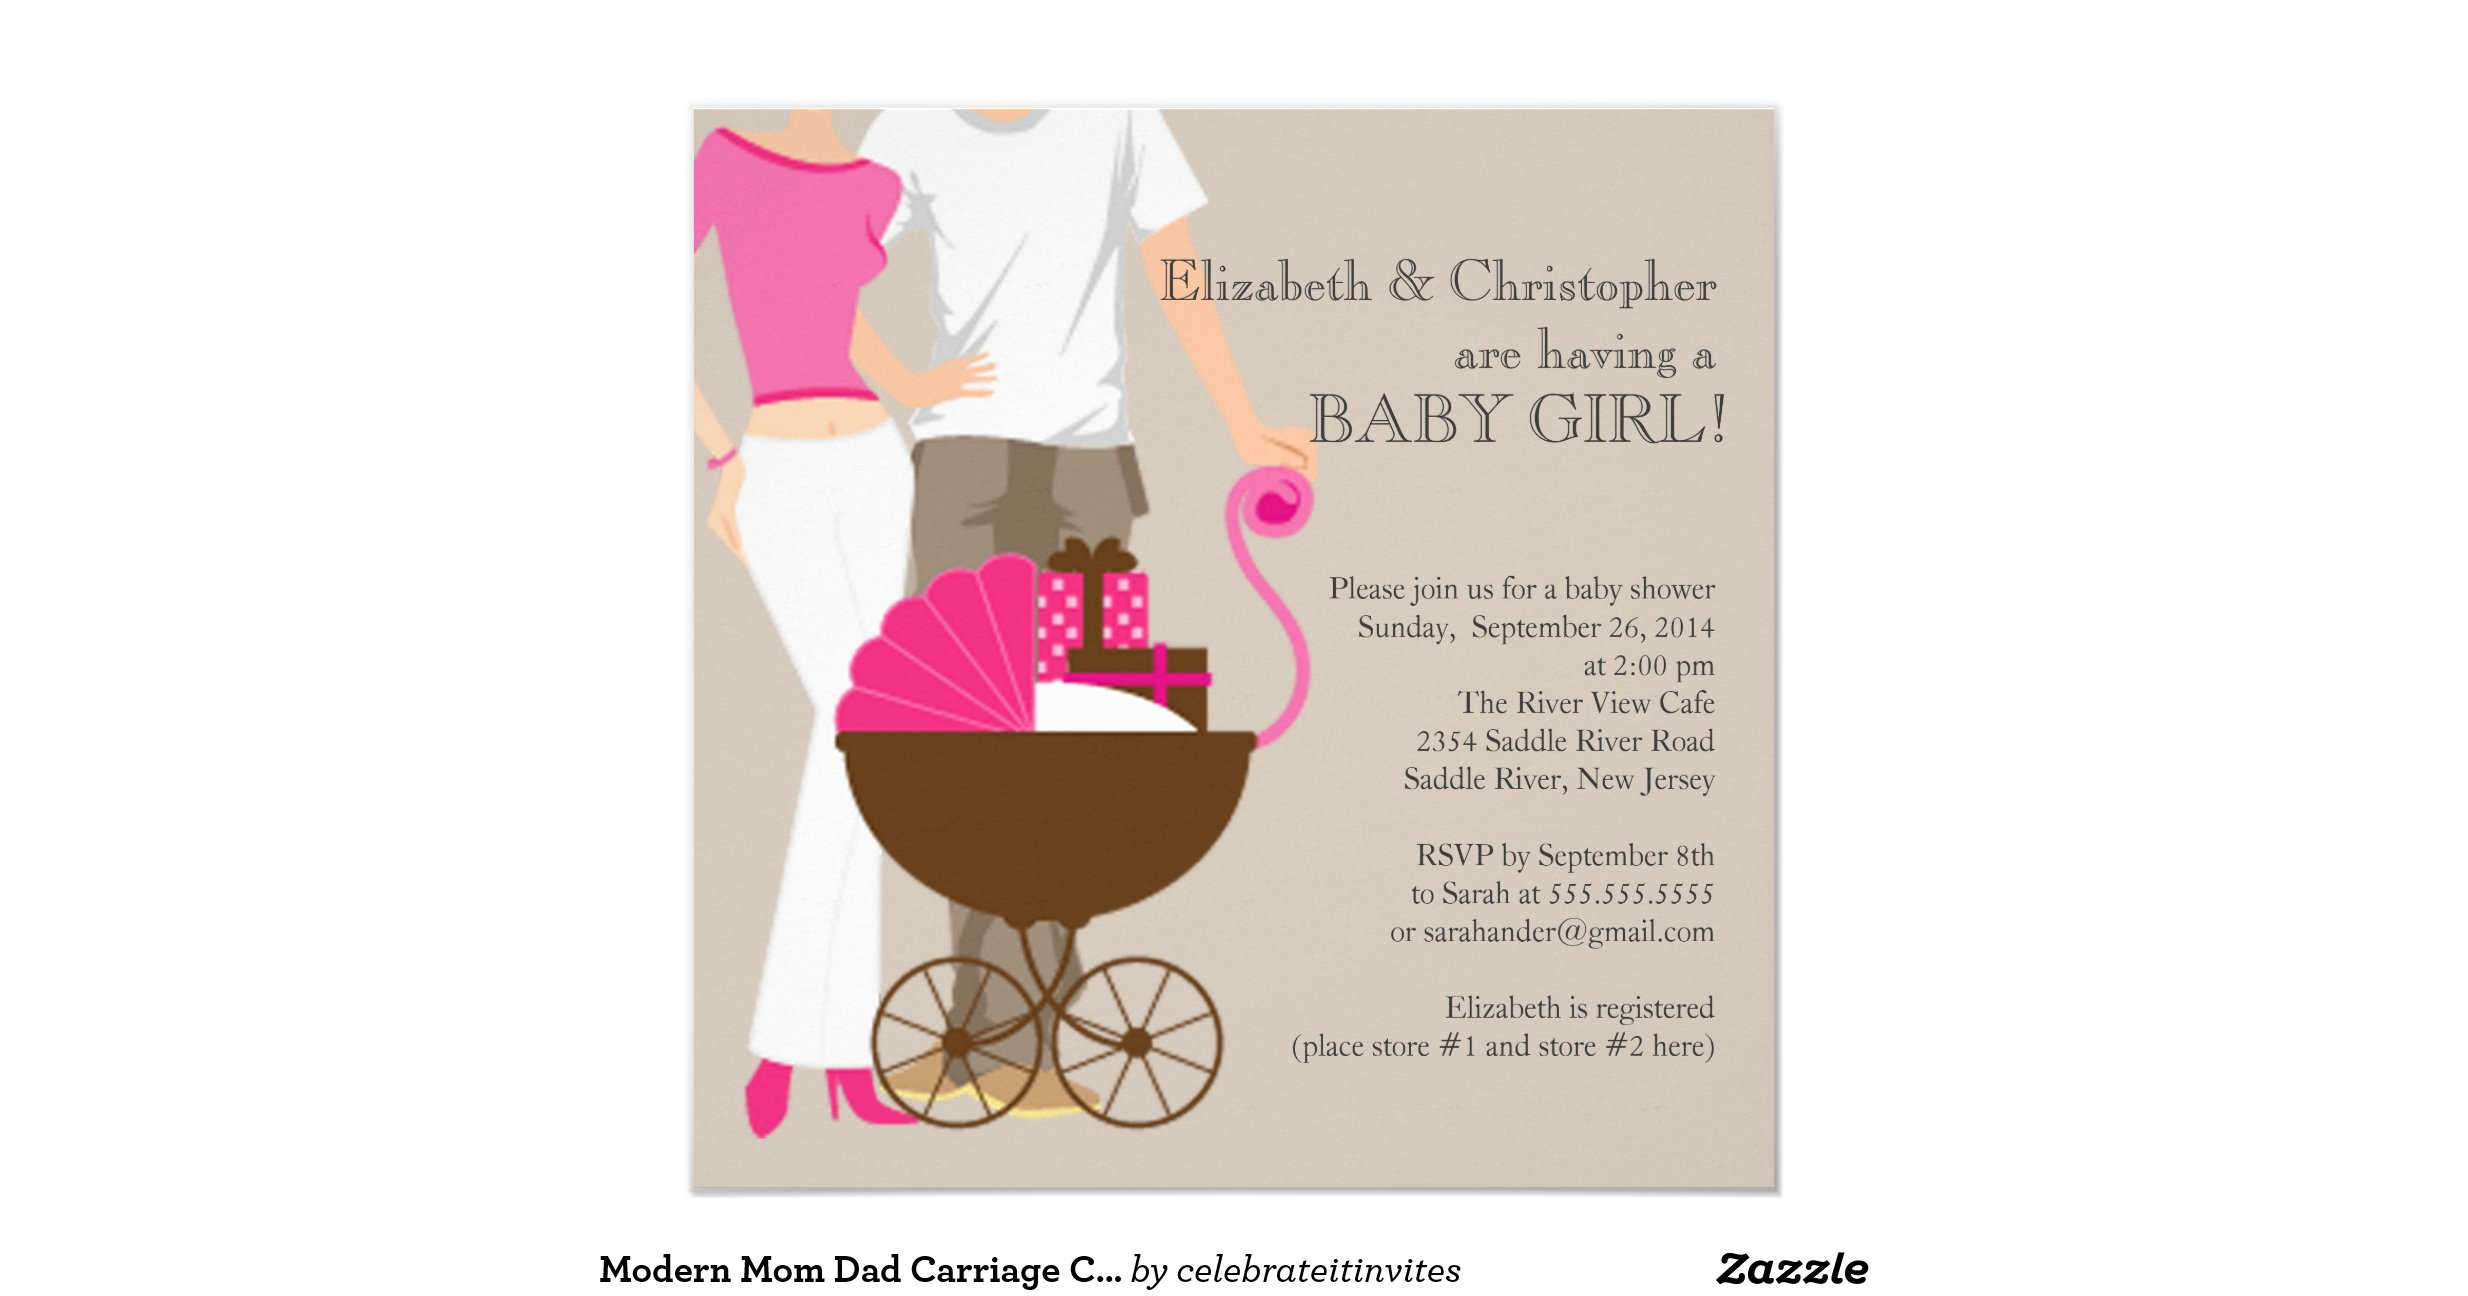 modern mom dad carriage couple baby shower invitation